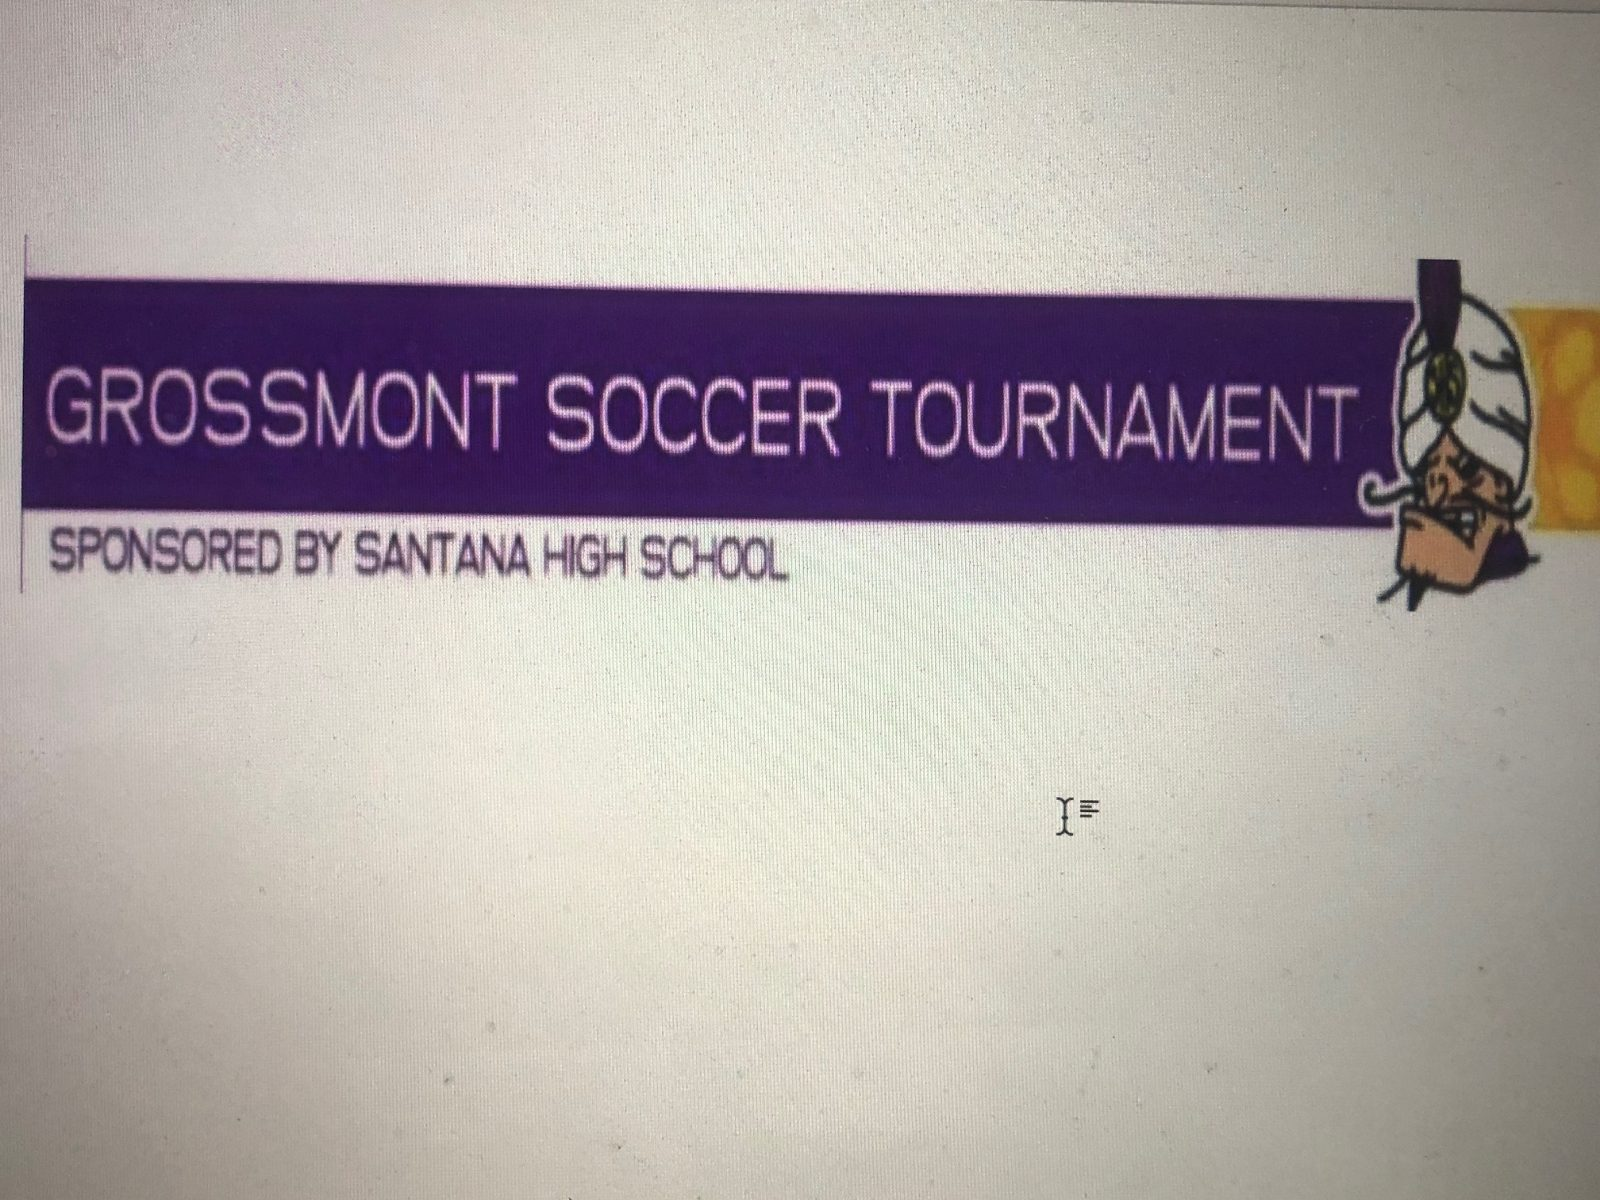 41st Annual Grossmont Tournament